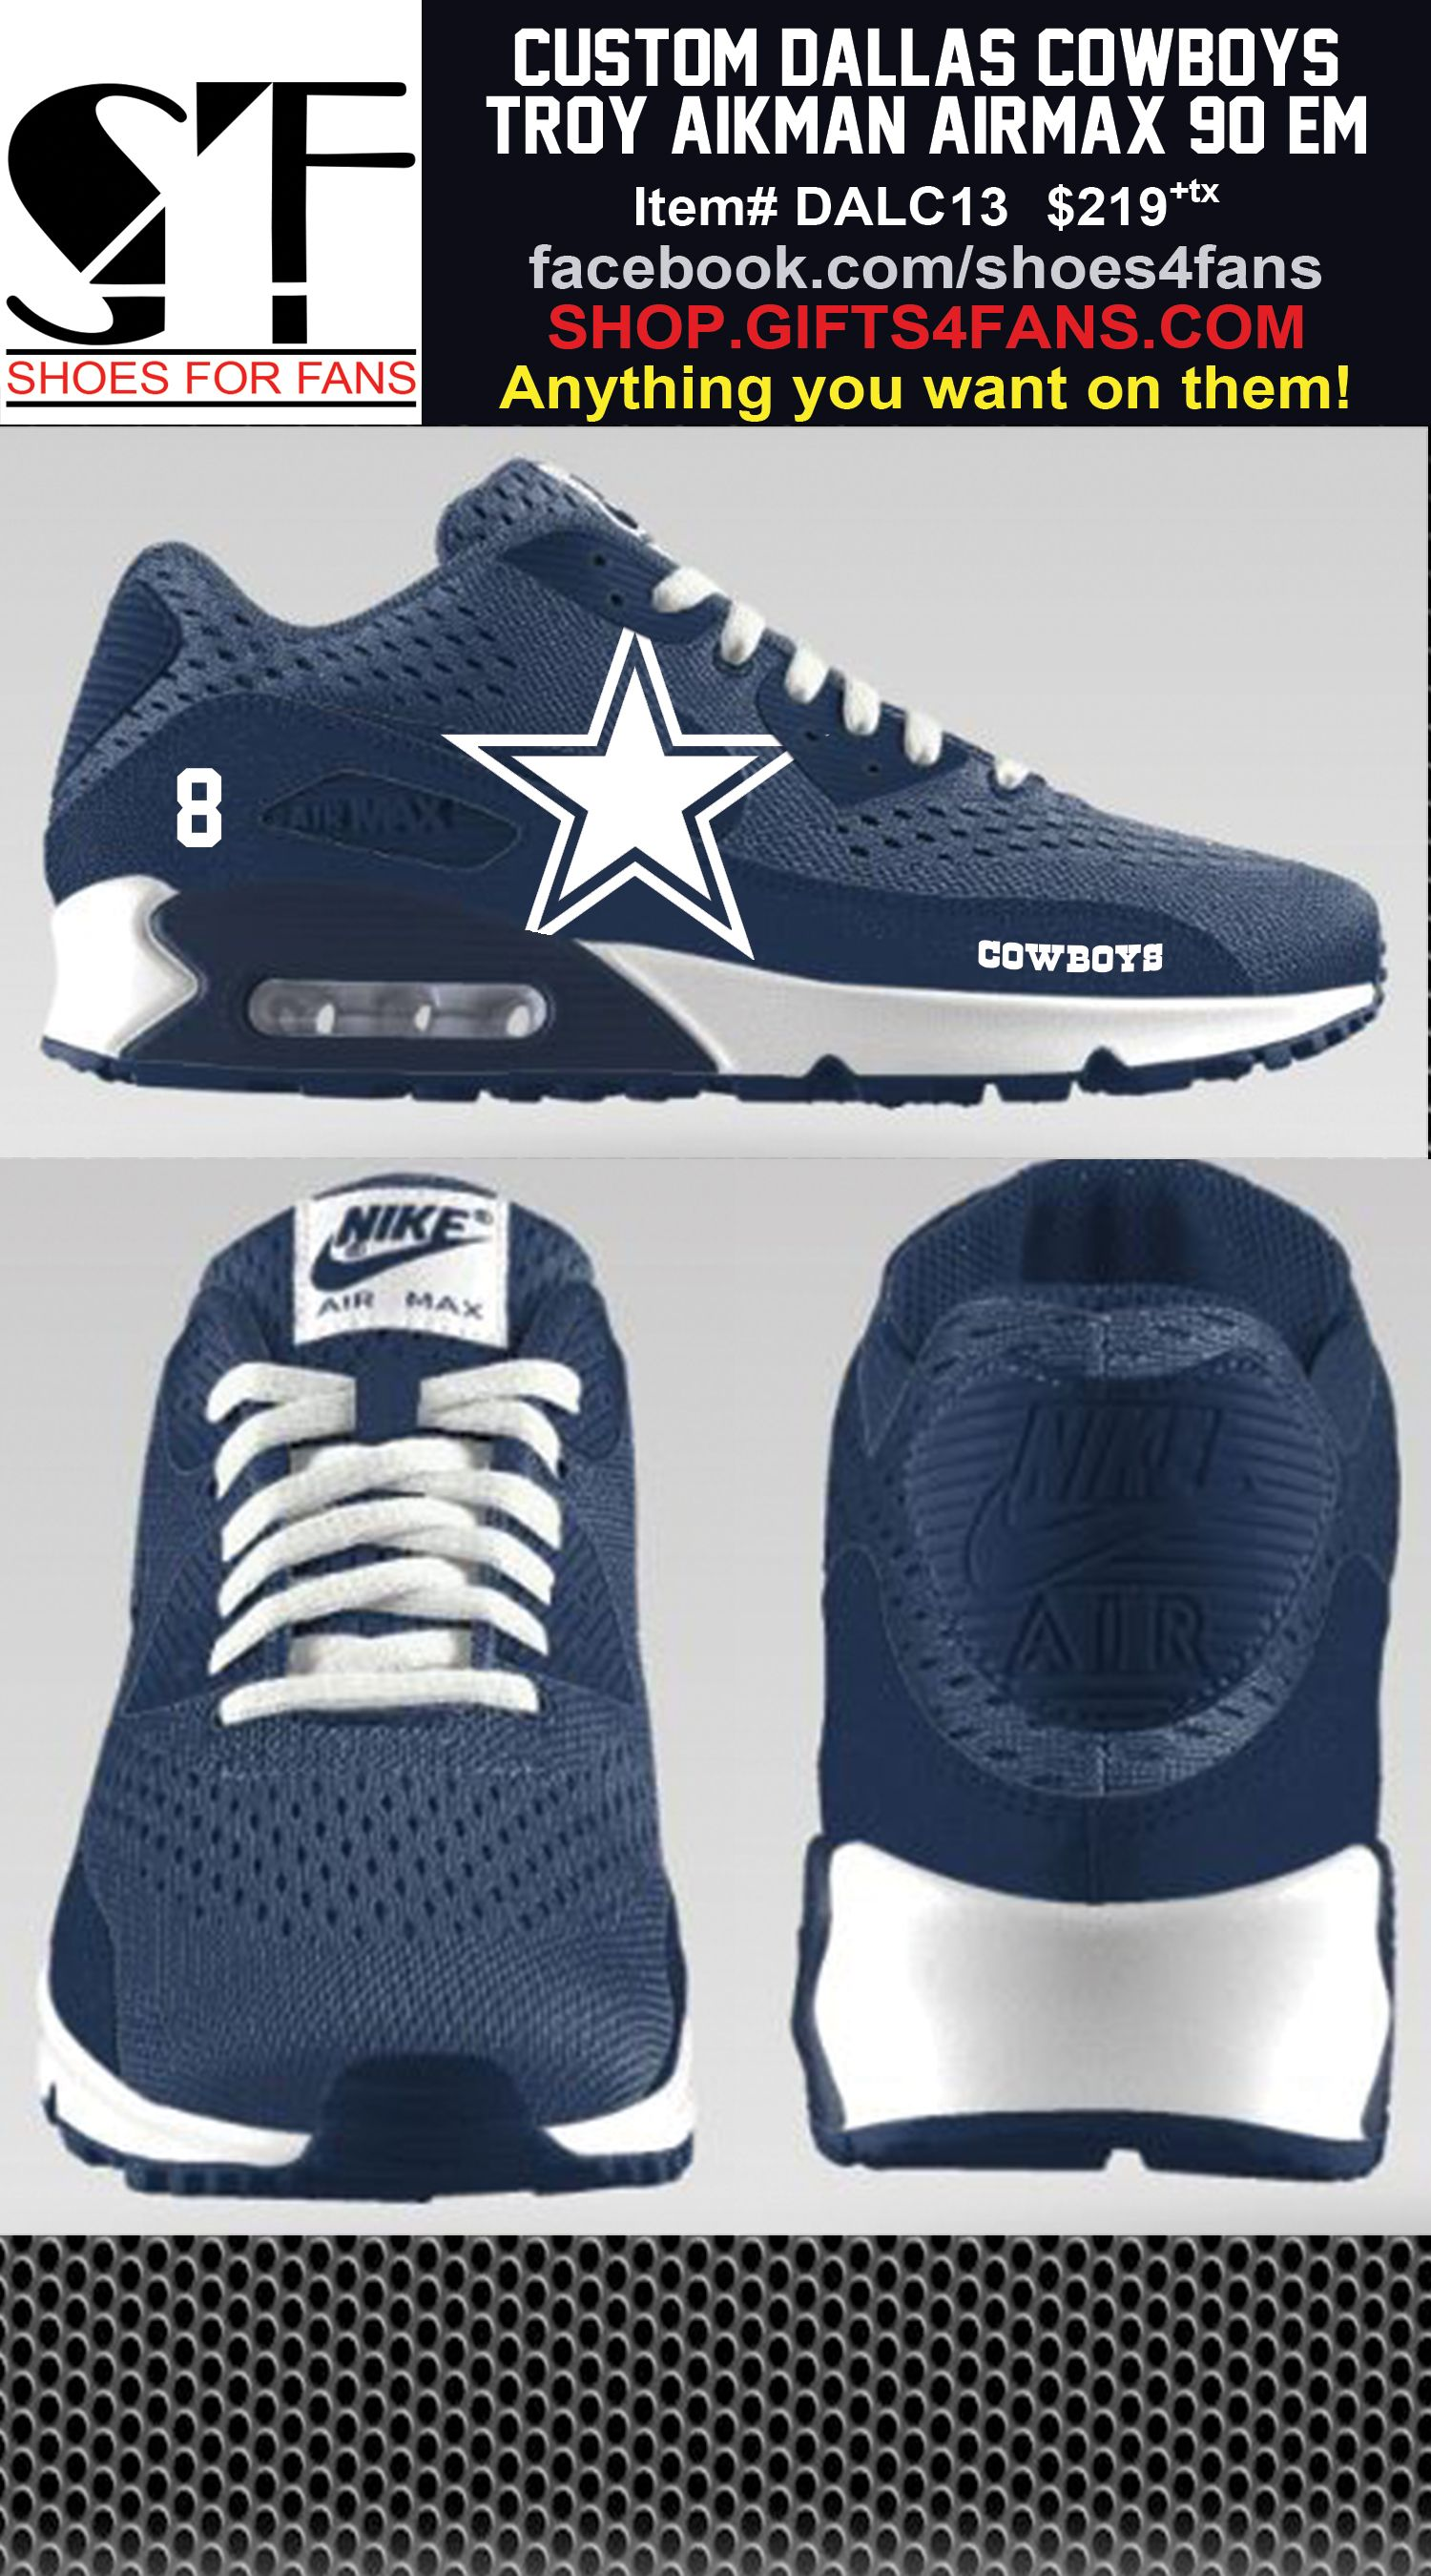 Custom Dallas Cowboys Troy Aikman Nike AirMax 90 EM shoes with number 8.  Order at shop.gifts4fans.com 75326d15f